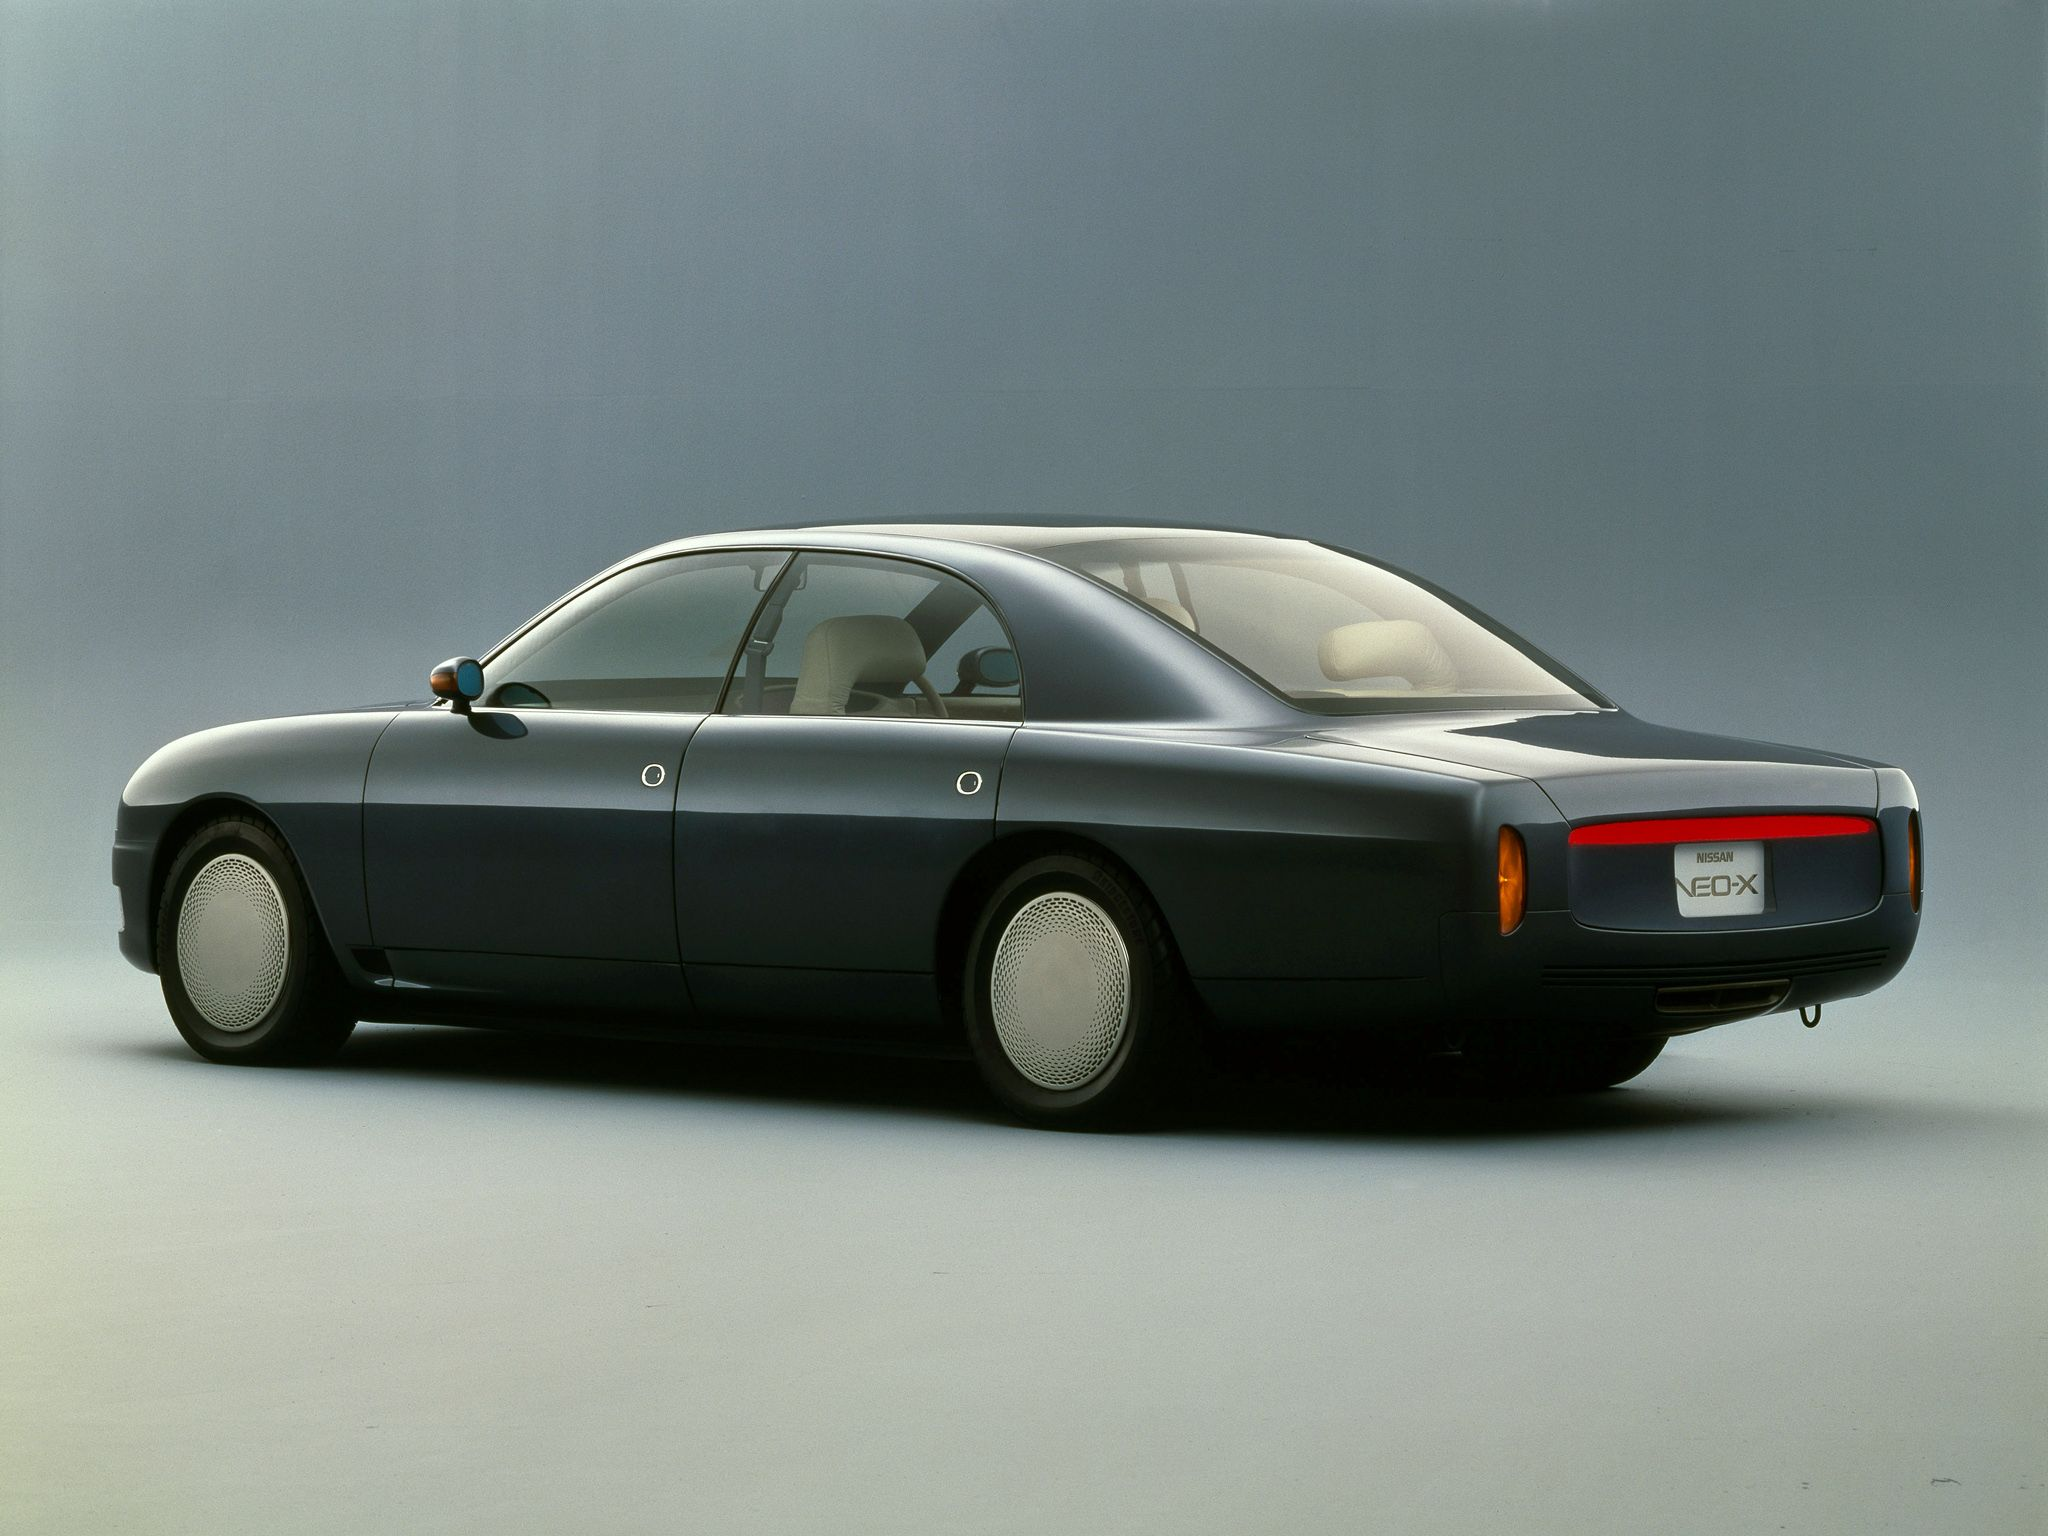 1989 Nissan Neo-X Concept